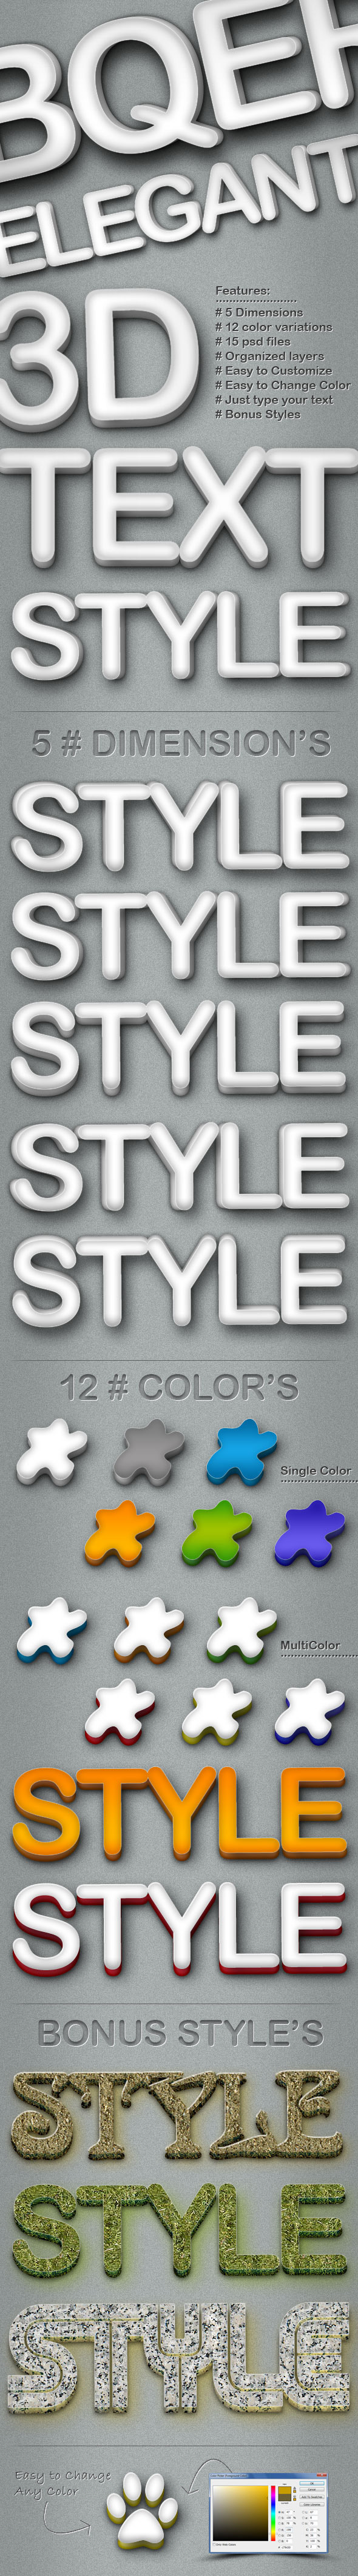 Elegant 3D Text Style - 5 Dimensions - Text Effects Styles